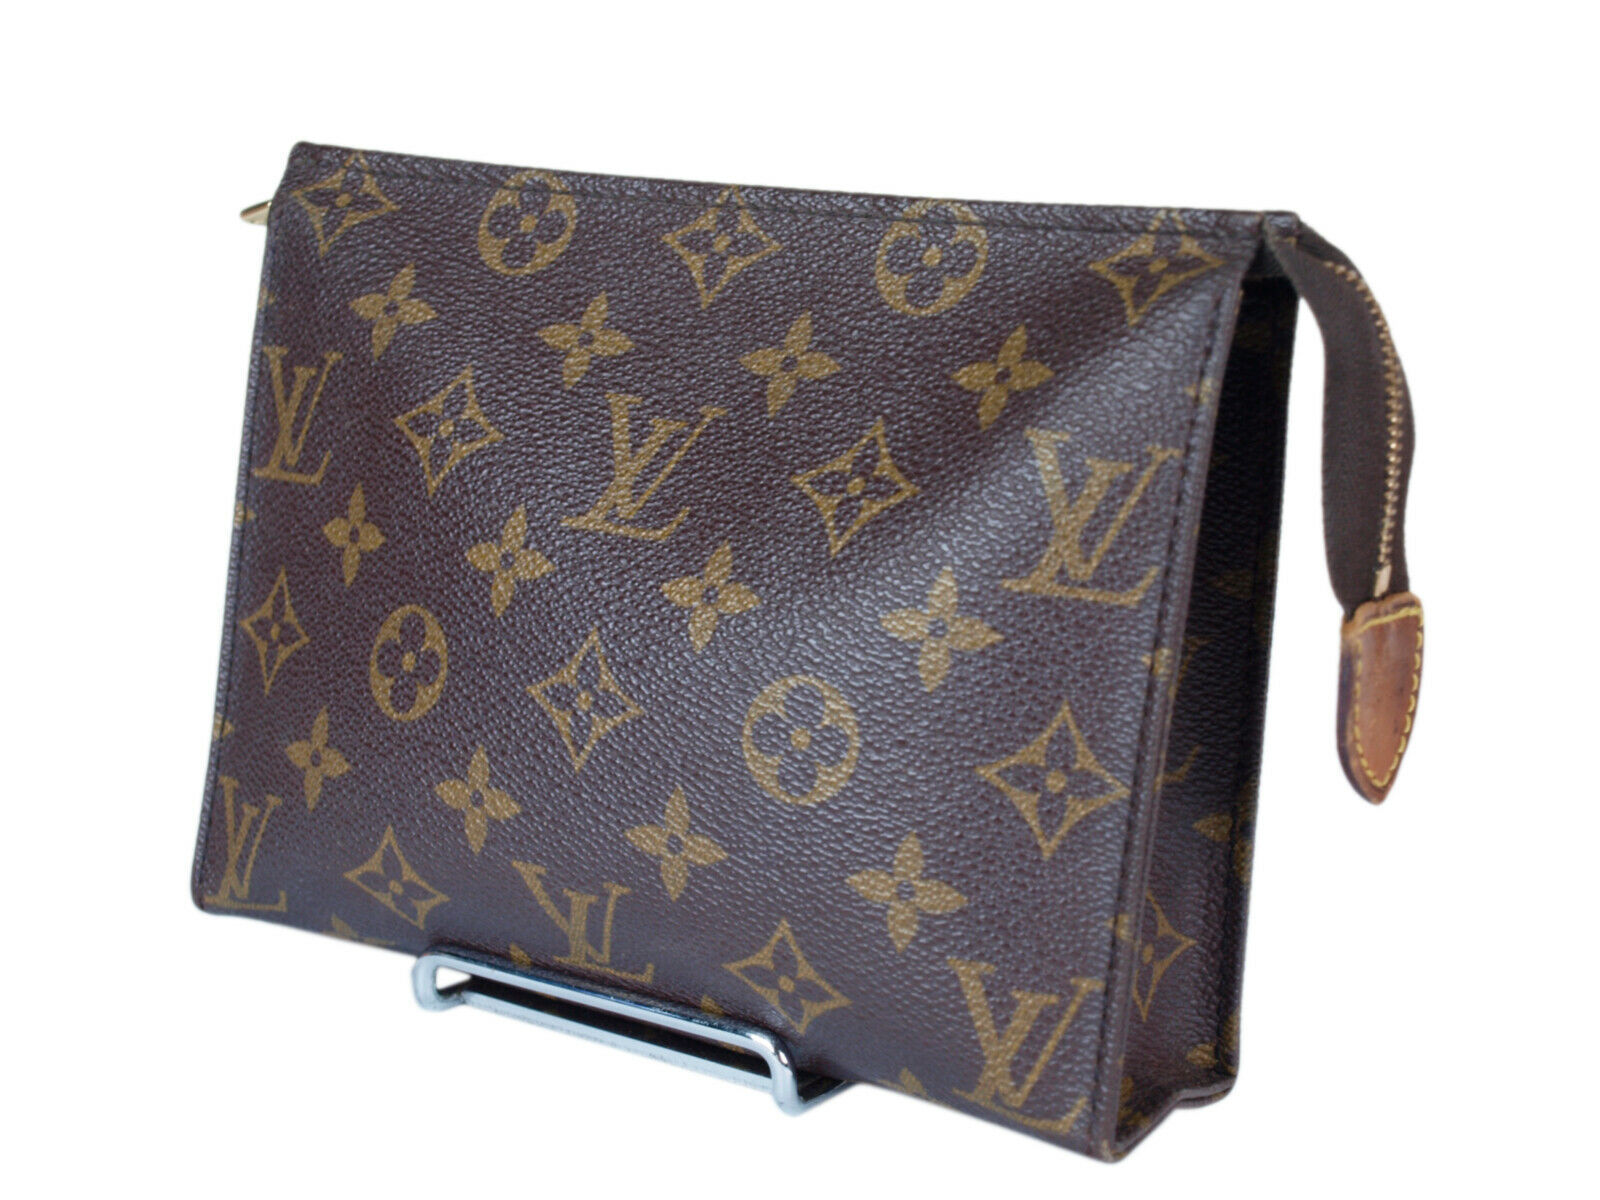 baed513dd96 Auth LOUIS VUITTON Monogram Canvas Leather Mini Pouch Accessories Bag  LP2295 - $198.00